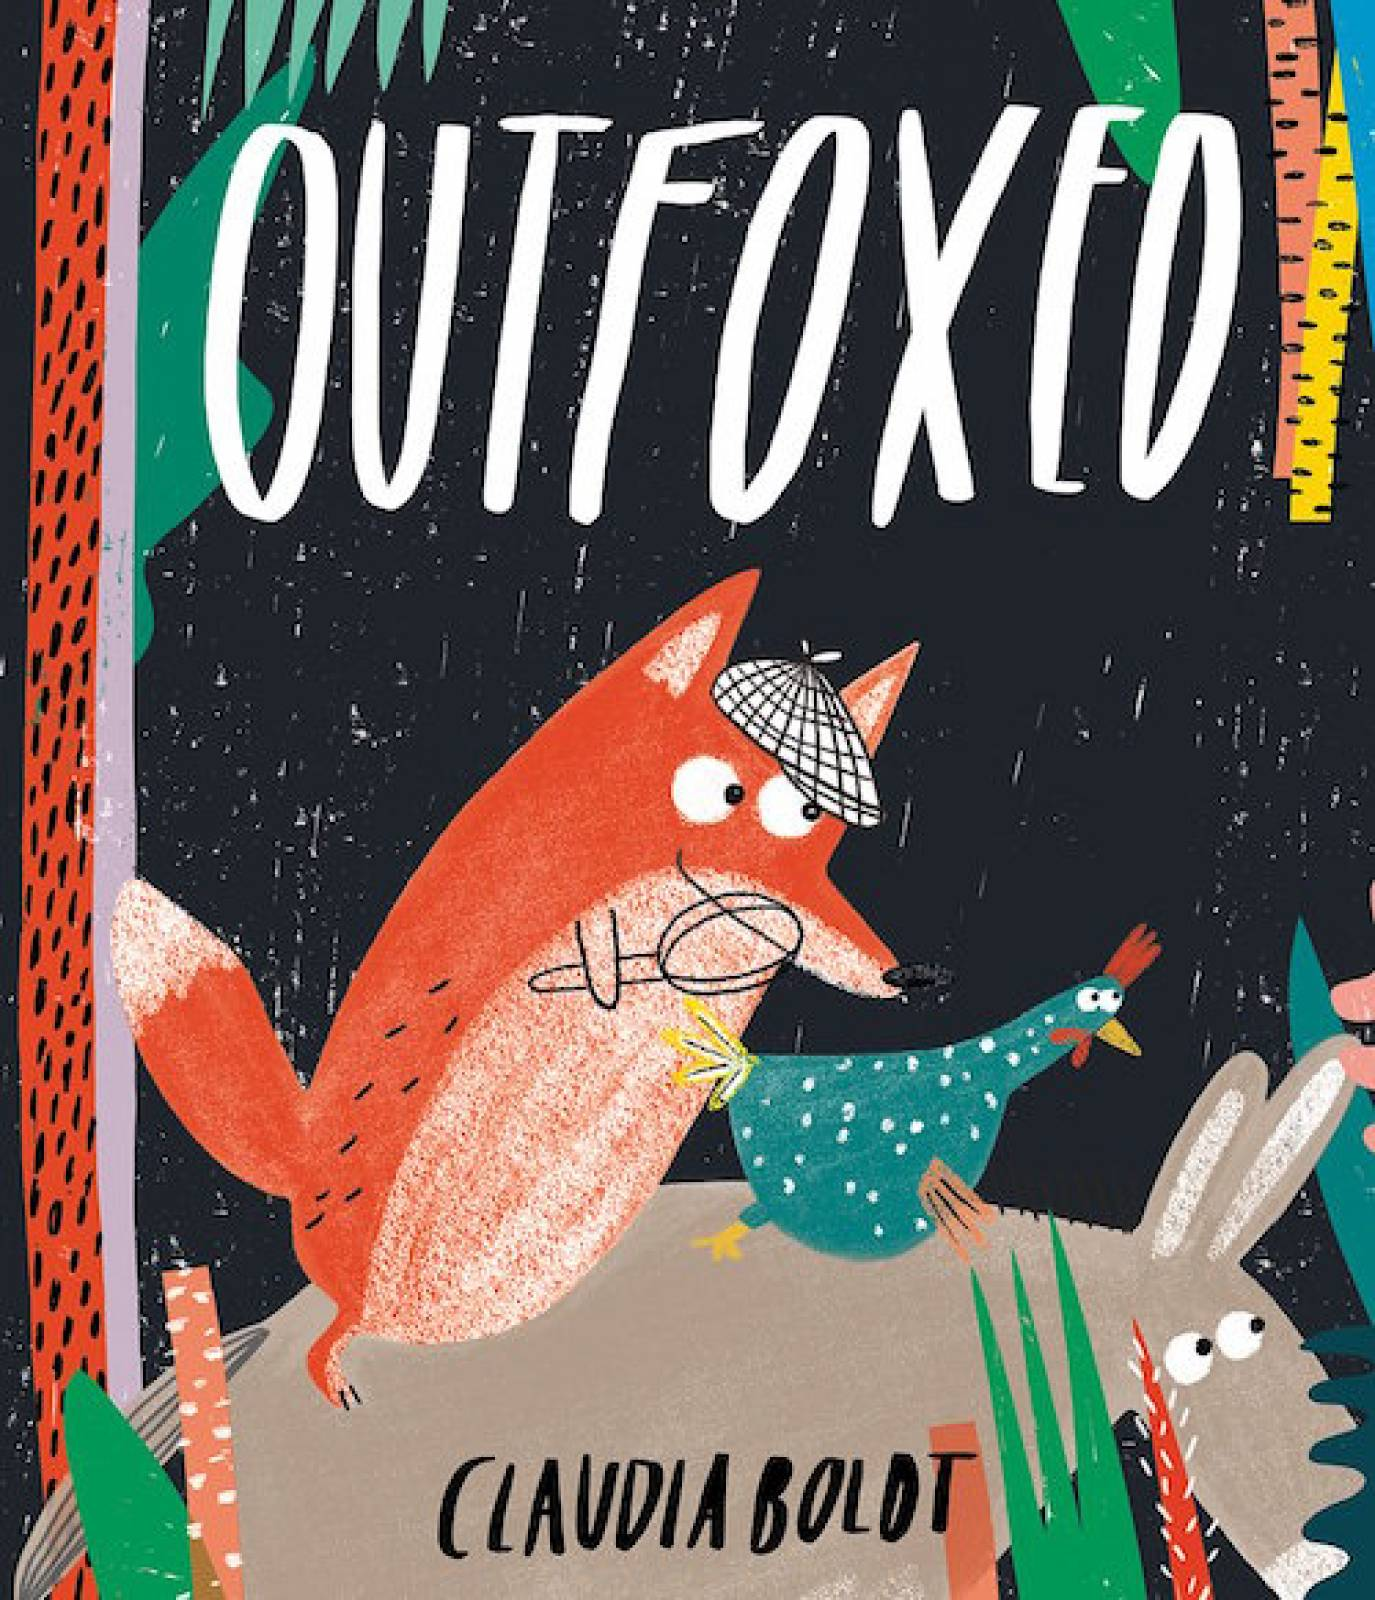 O/P Outfoxed Hardback Book By Claudia Boldt